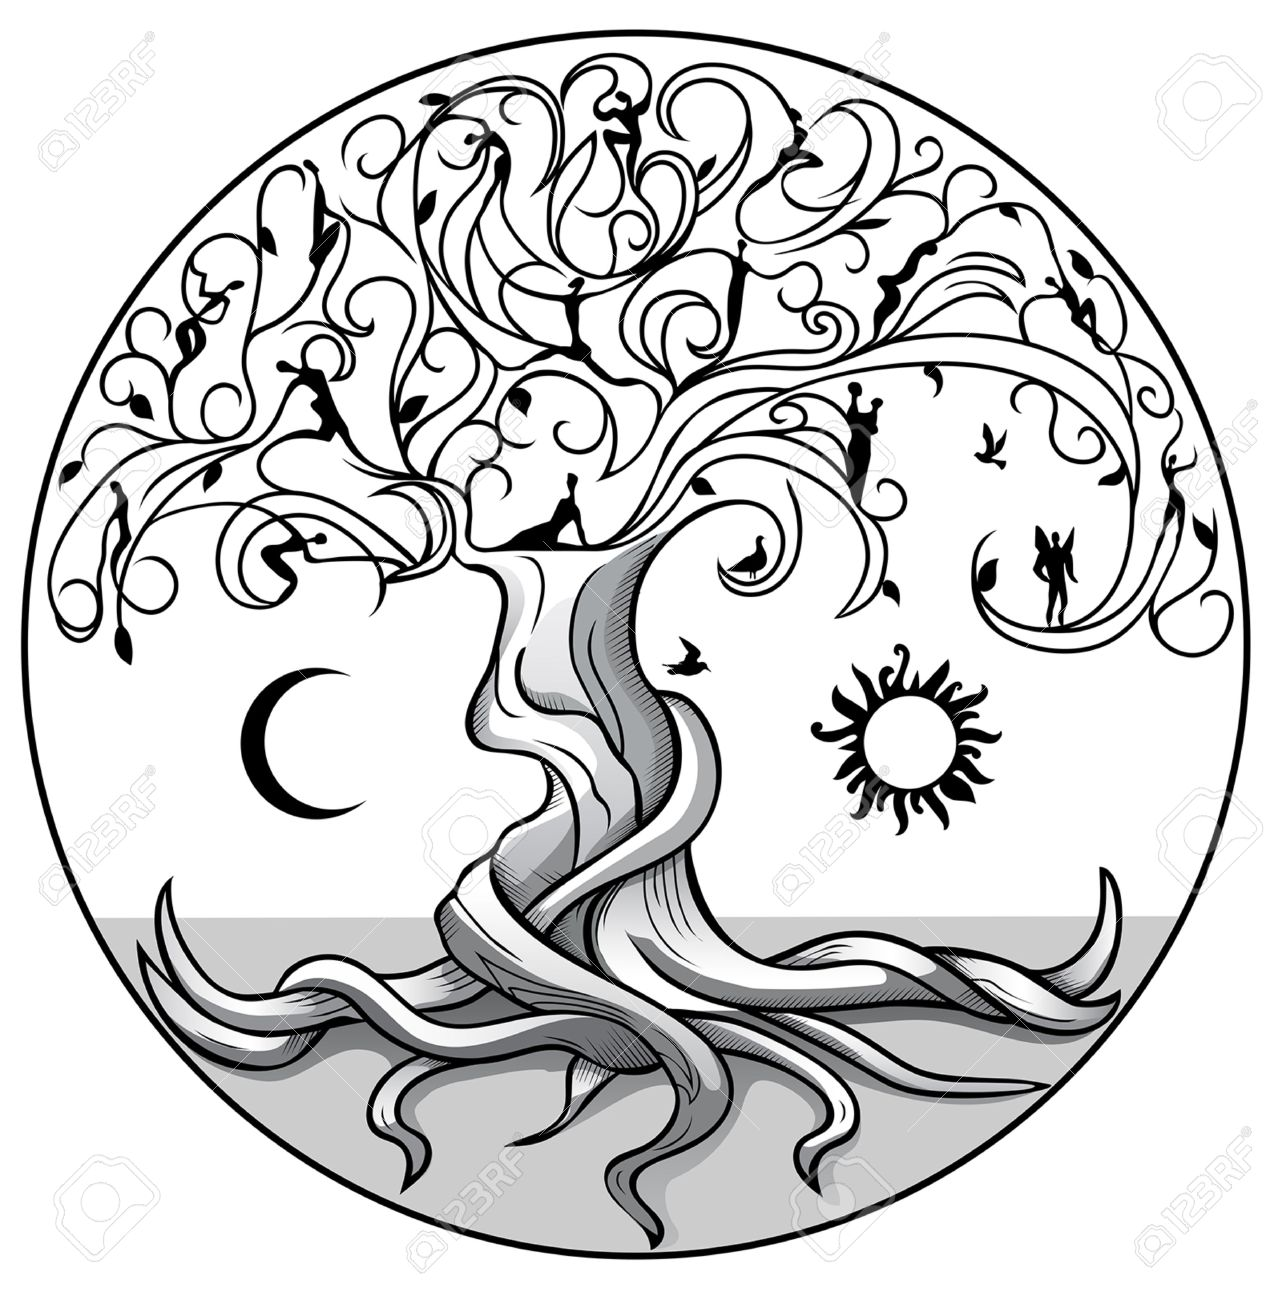 Tree of life with sun and moon on white background - 58038963